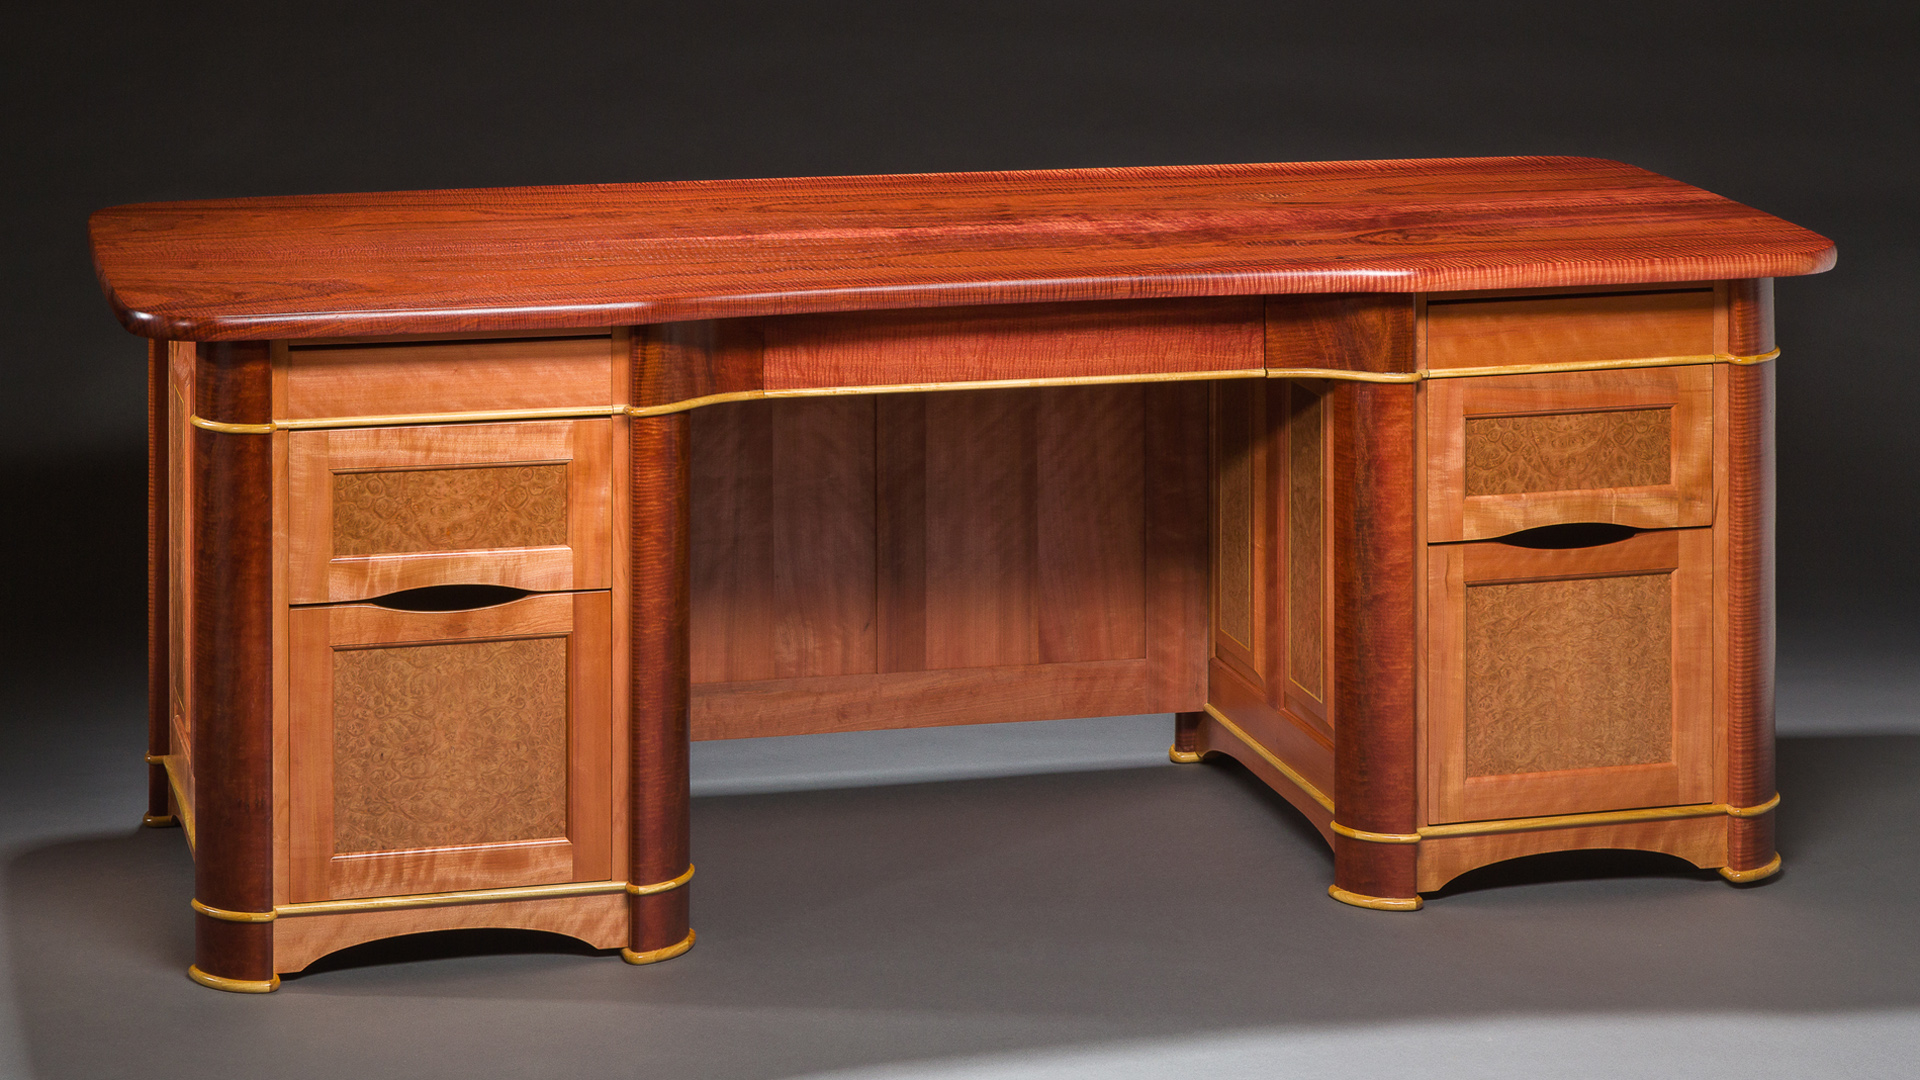 Megan's Desk - Curly Jarrah, Satinwood, Myrtle, Eucalyptus